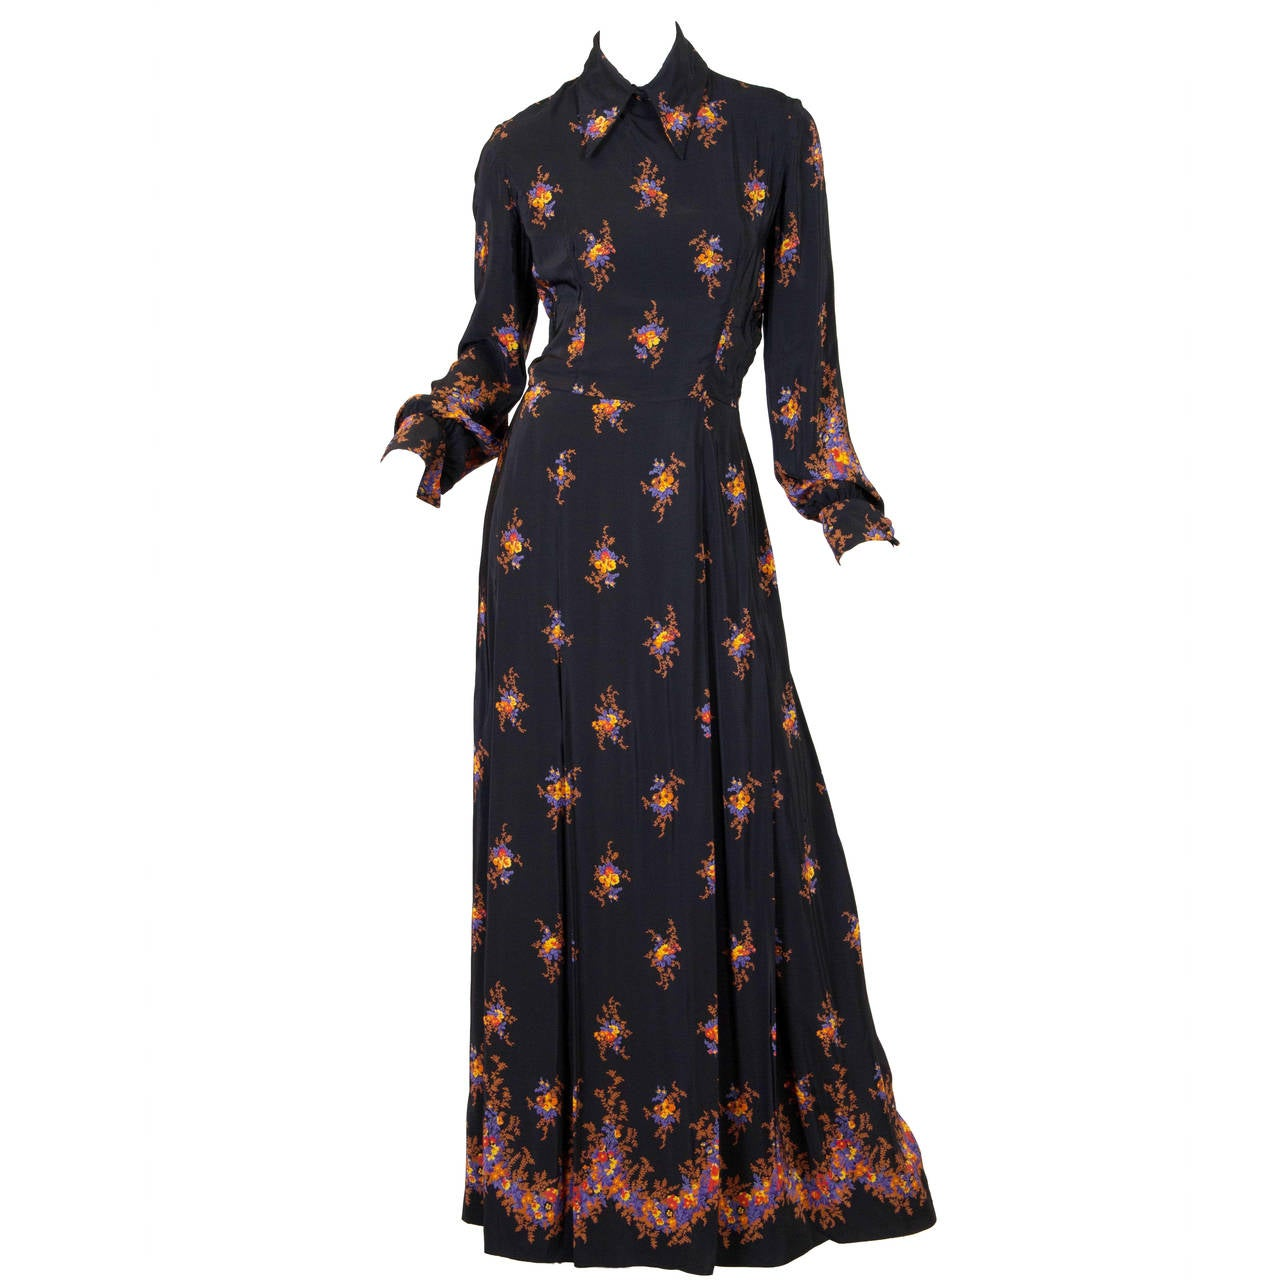 Valentino 1970s Nouveau Victorian Floral Dress At 1stdibs